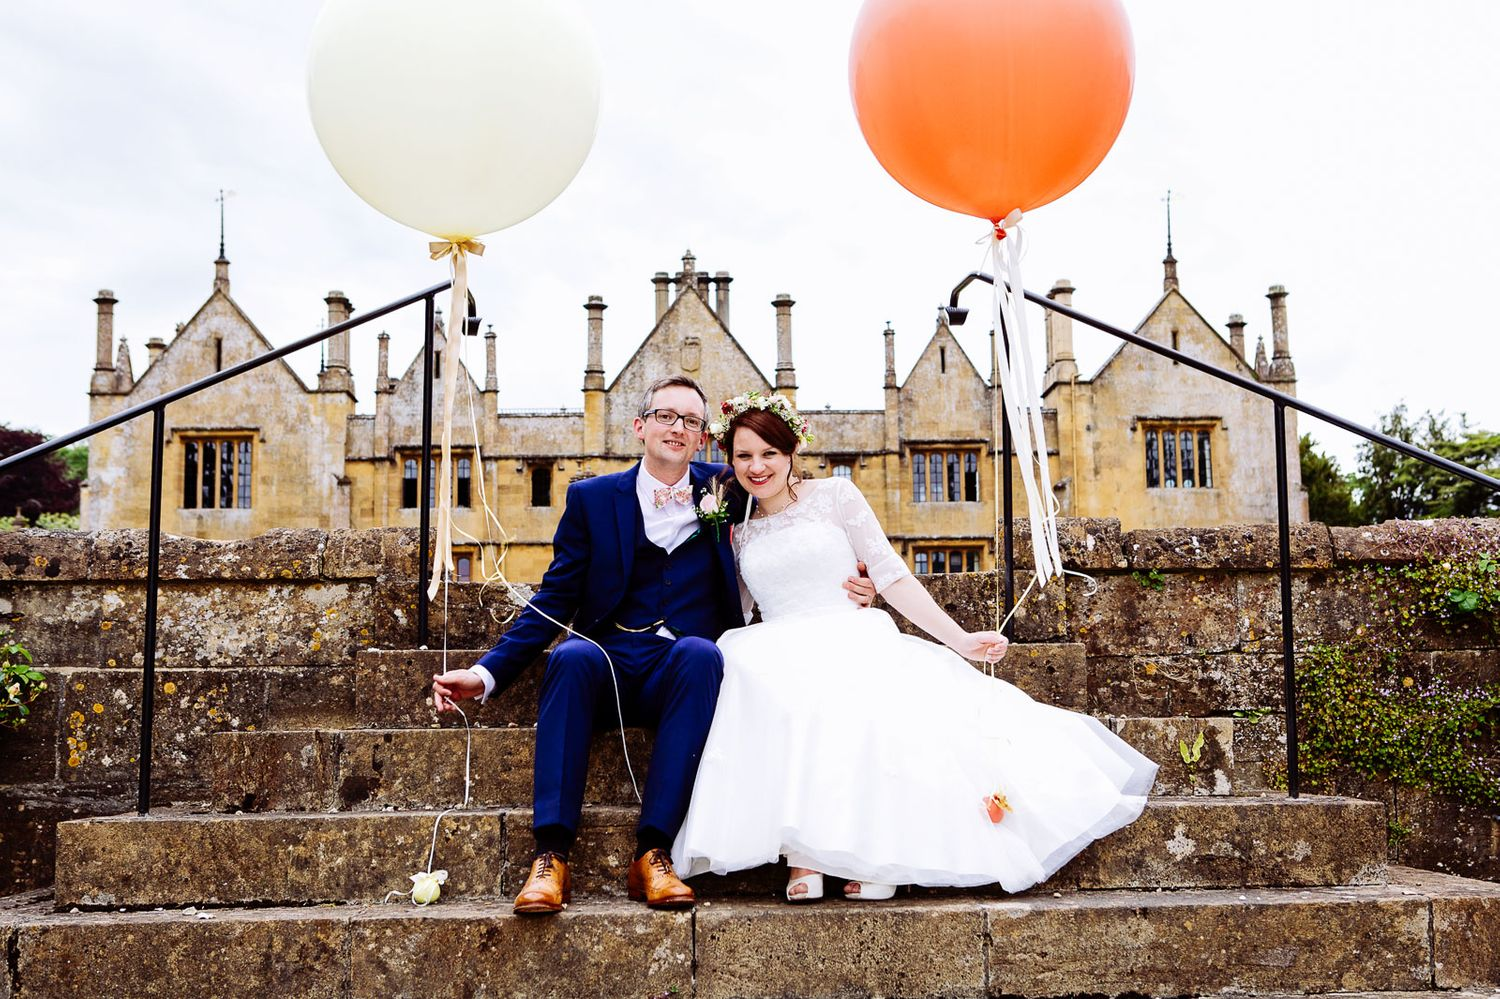 couple portraits at wedding in Dorset. couples hold large balloons in vintage style wedding